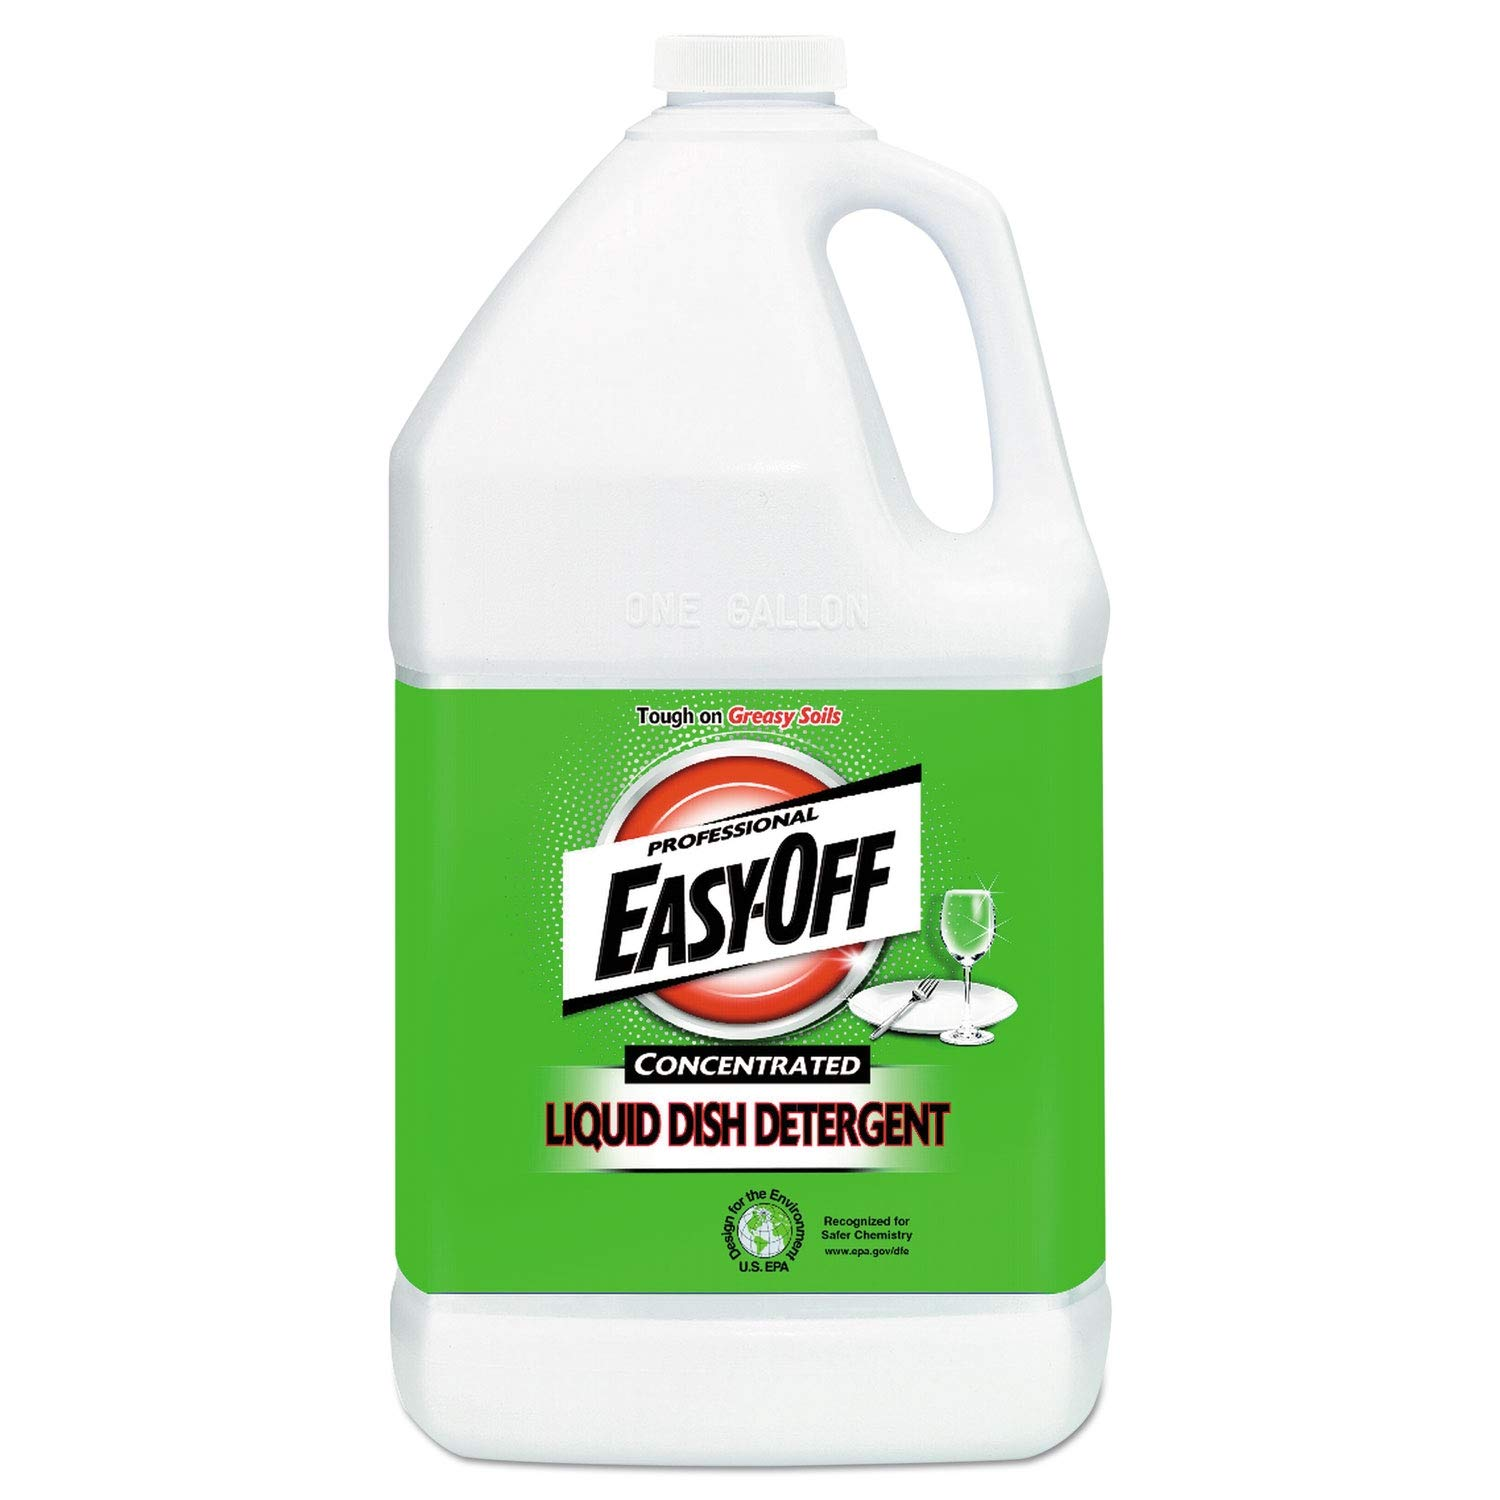 Professional EASY-OFF Liquid Dish Detergent Concentrate, 1 gal Bottle - 89769EA